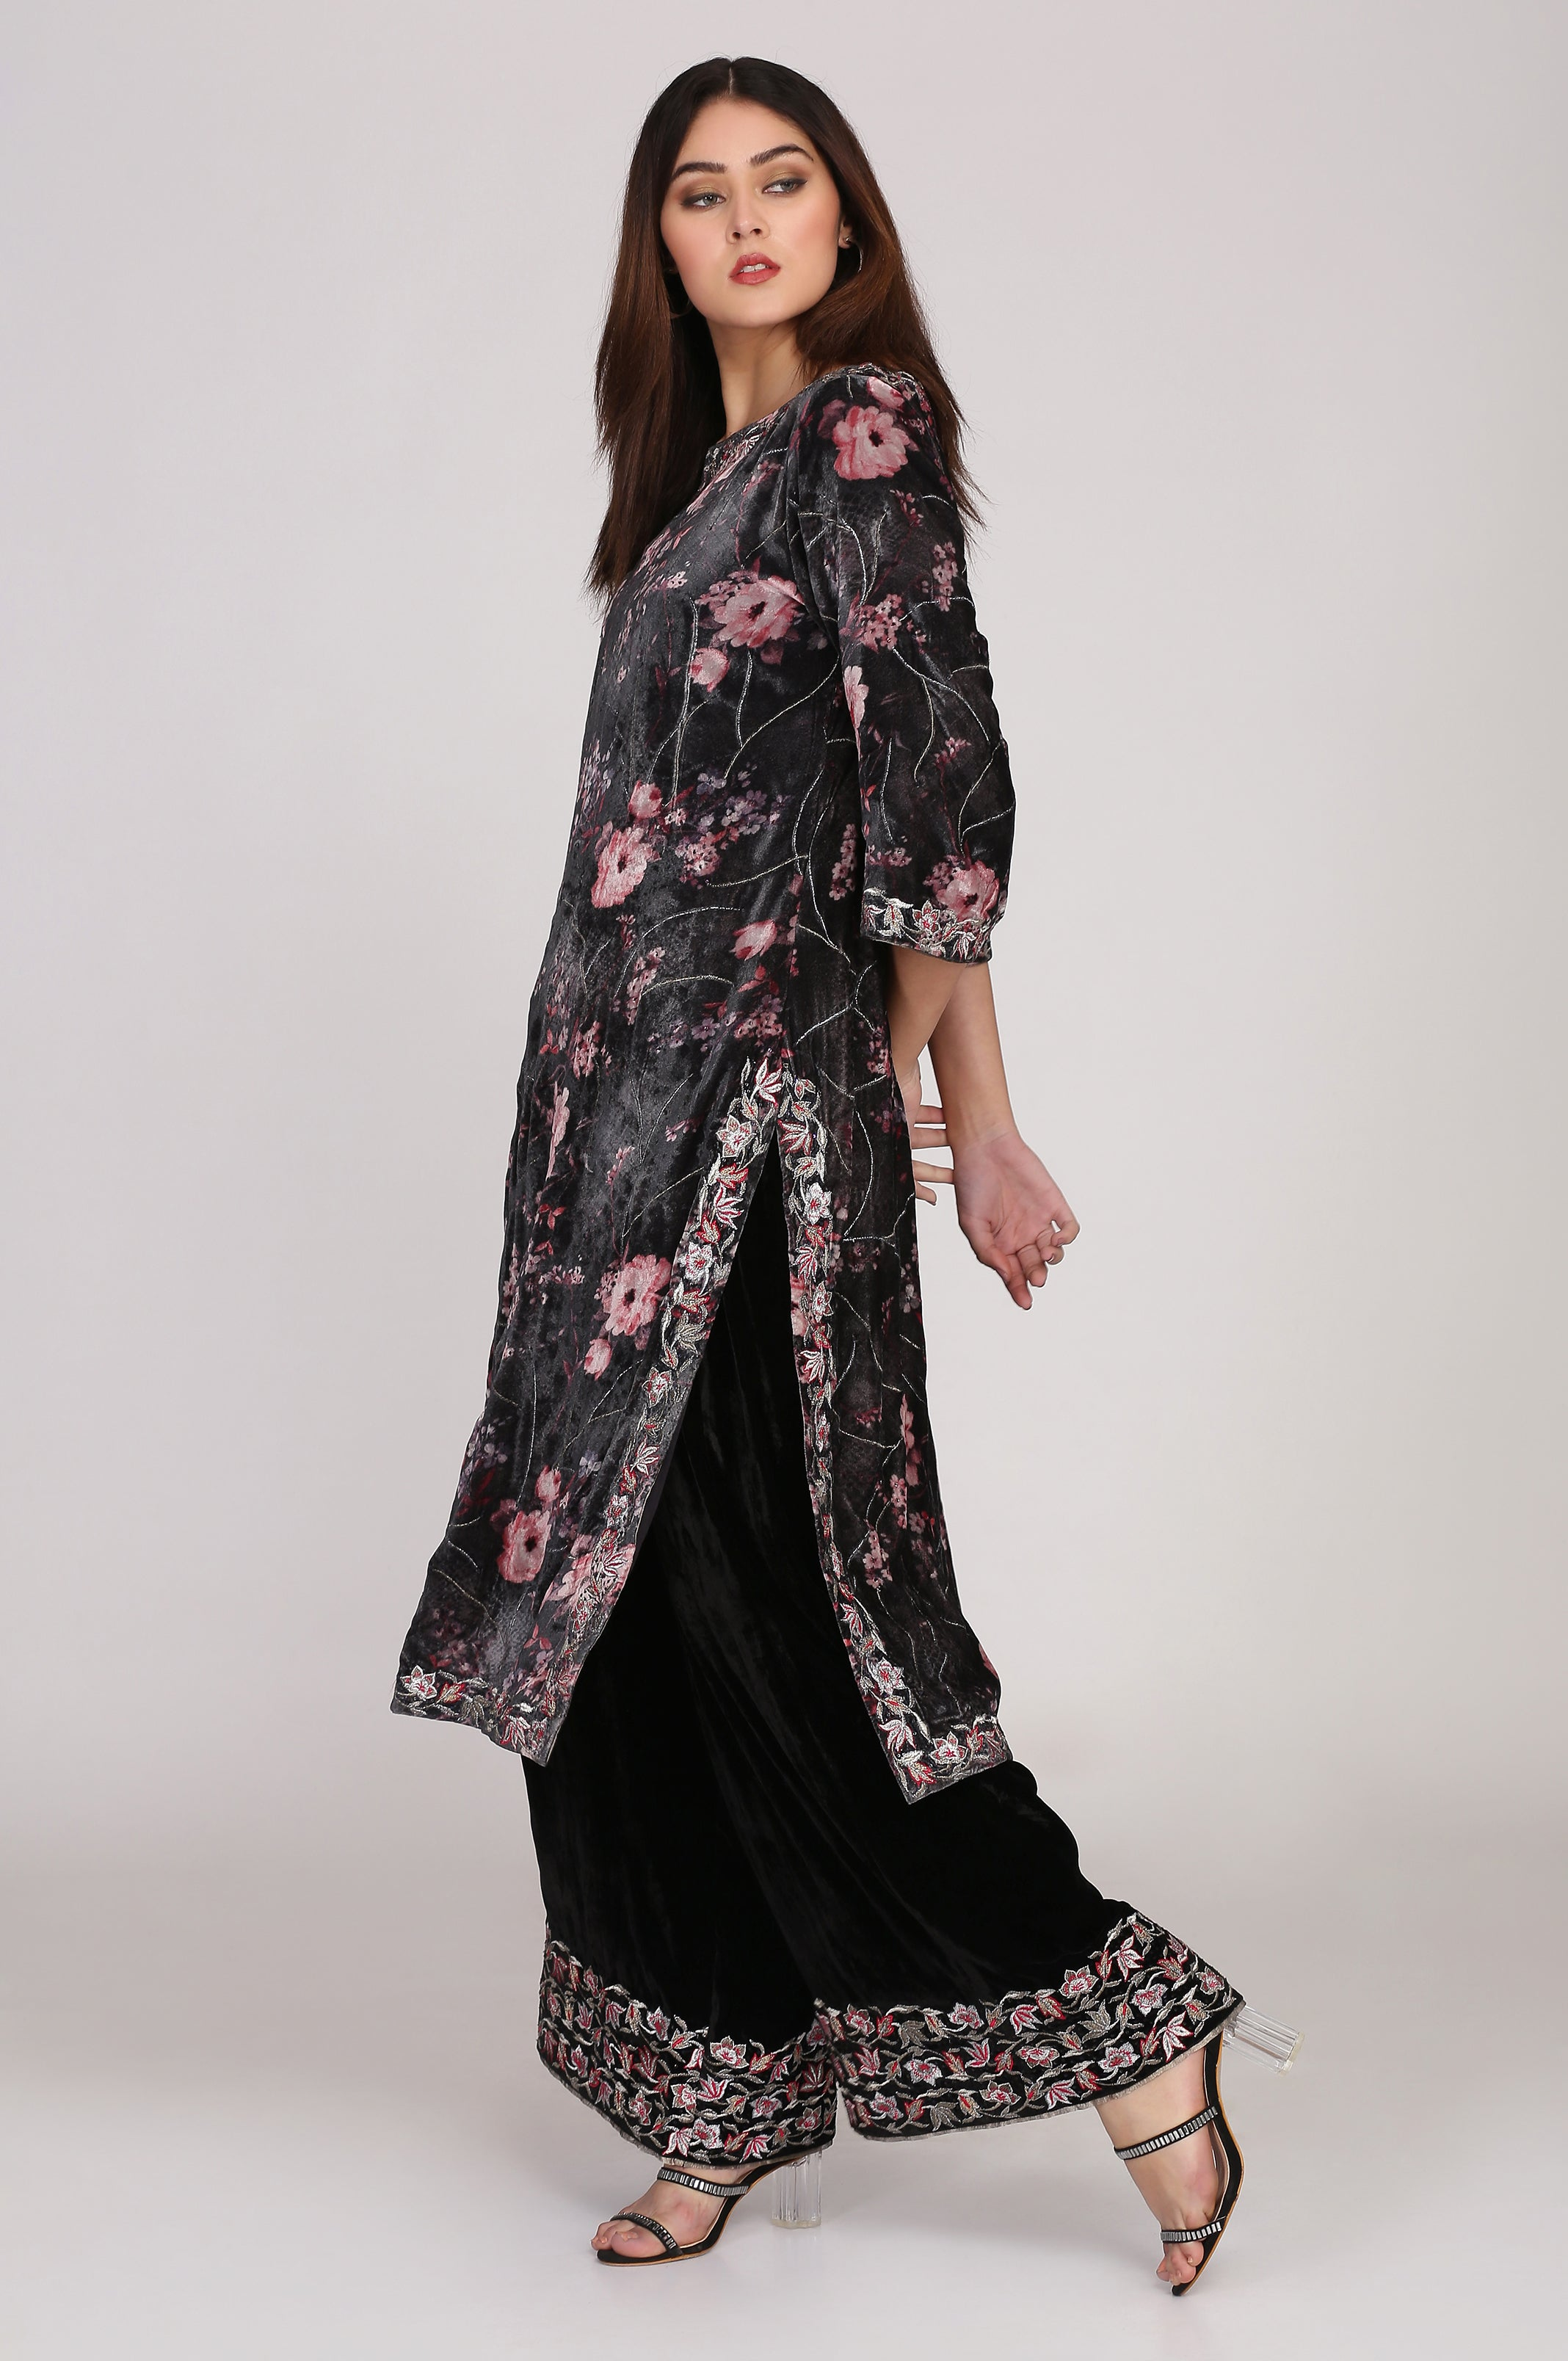 PRINTED CHARCOAL BLACK SILK VELVET TUNIC WITH BLACK PANTS